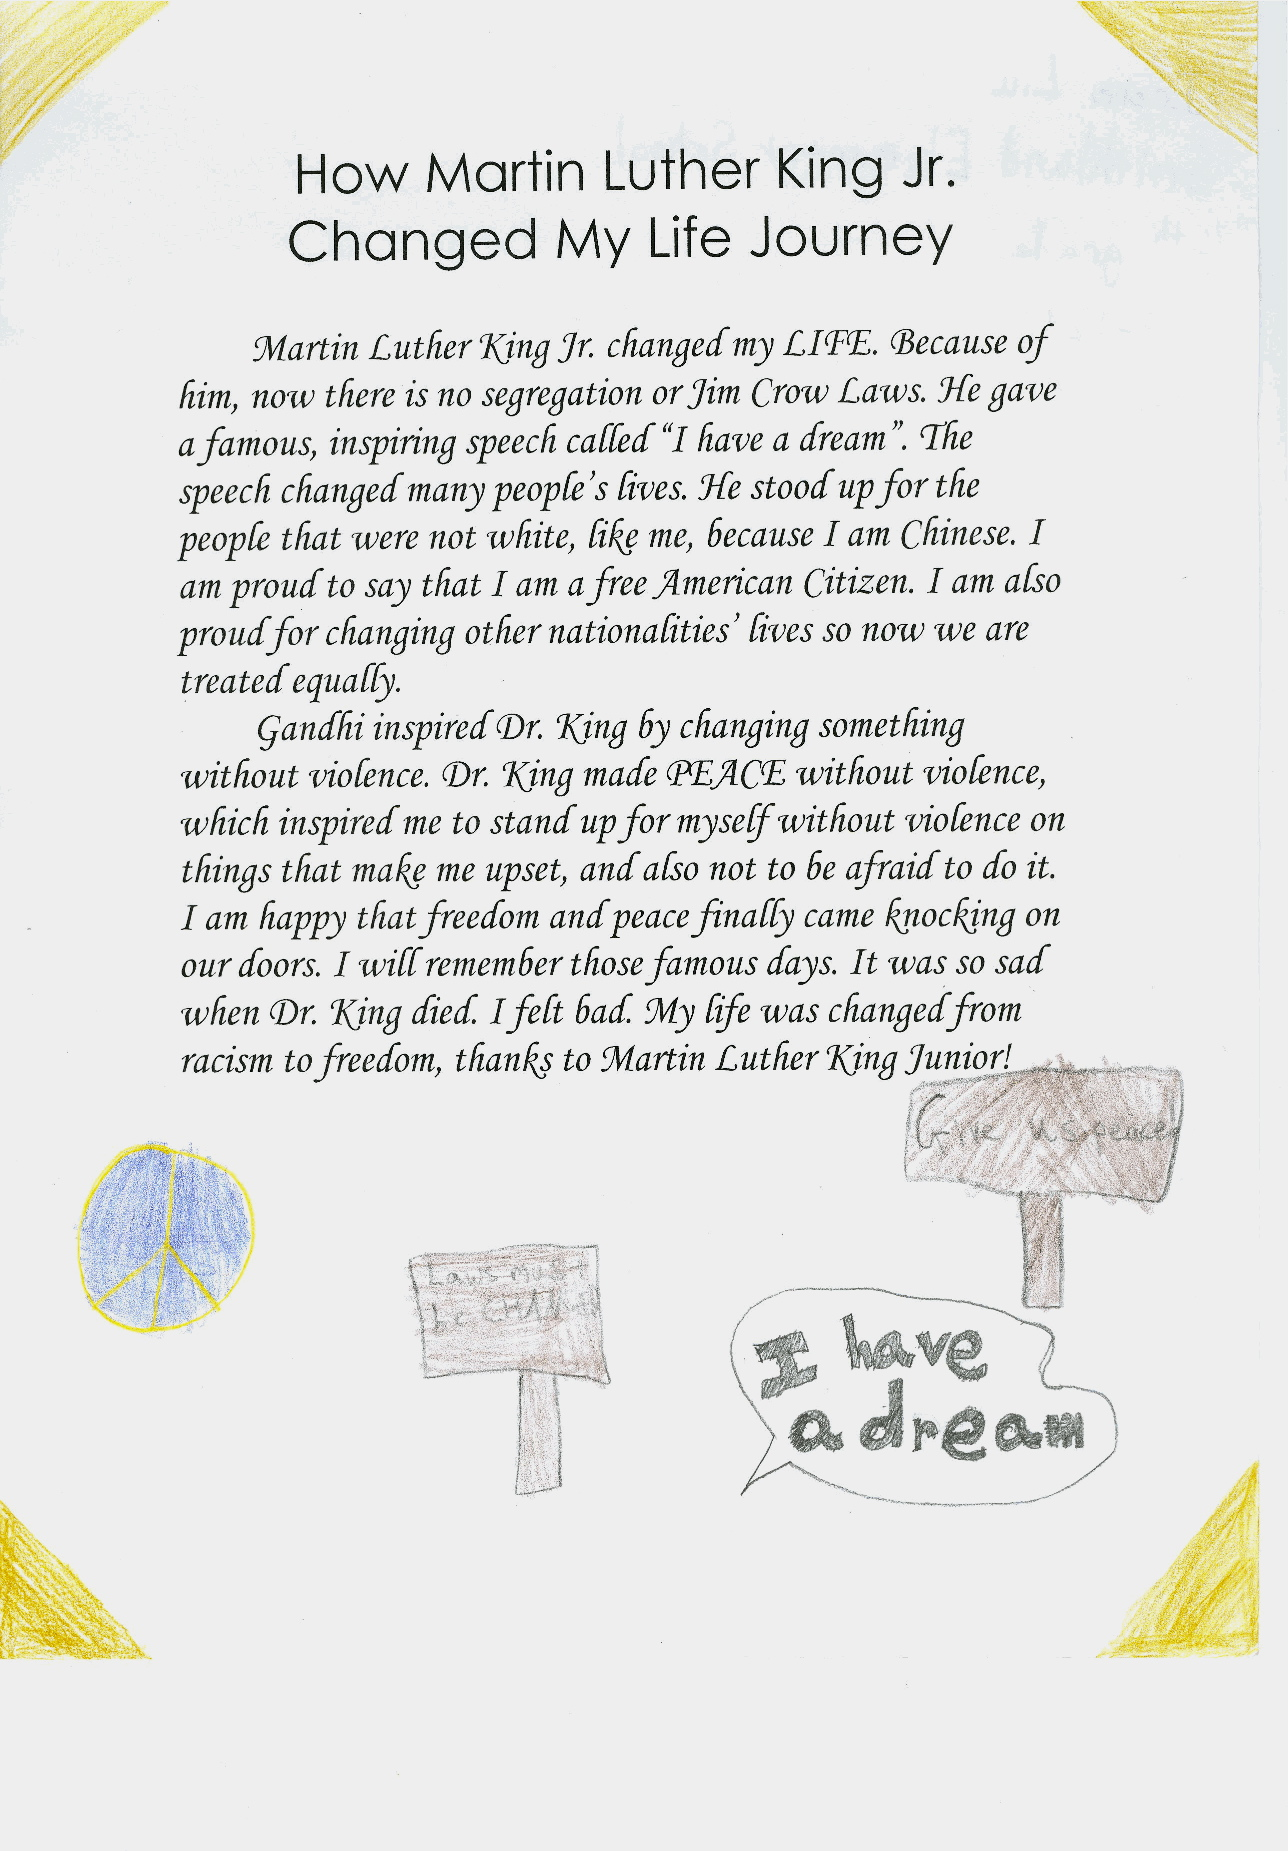 essay martin luther king essay on martin luther king jr and his philosophy on nonviolent direct